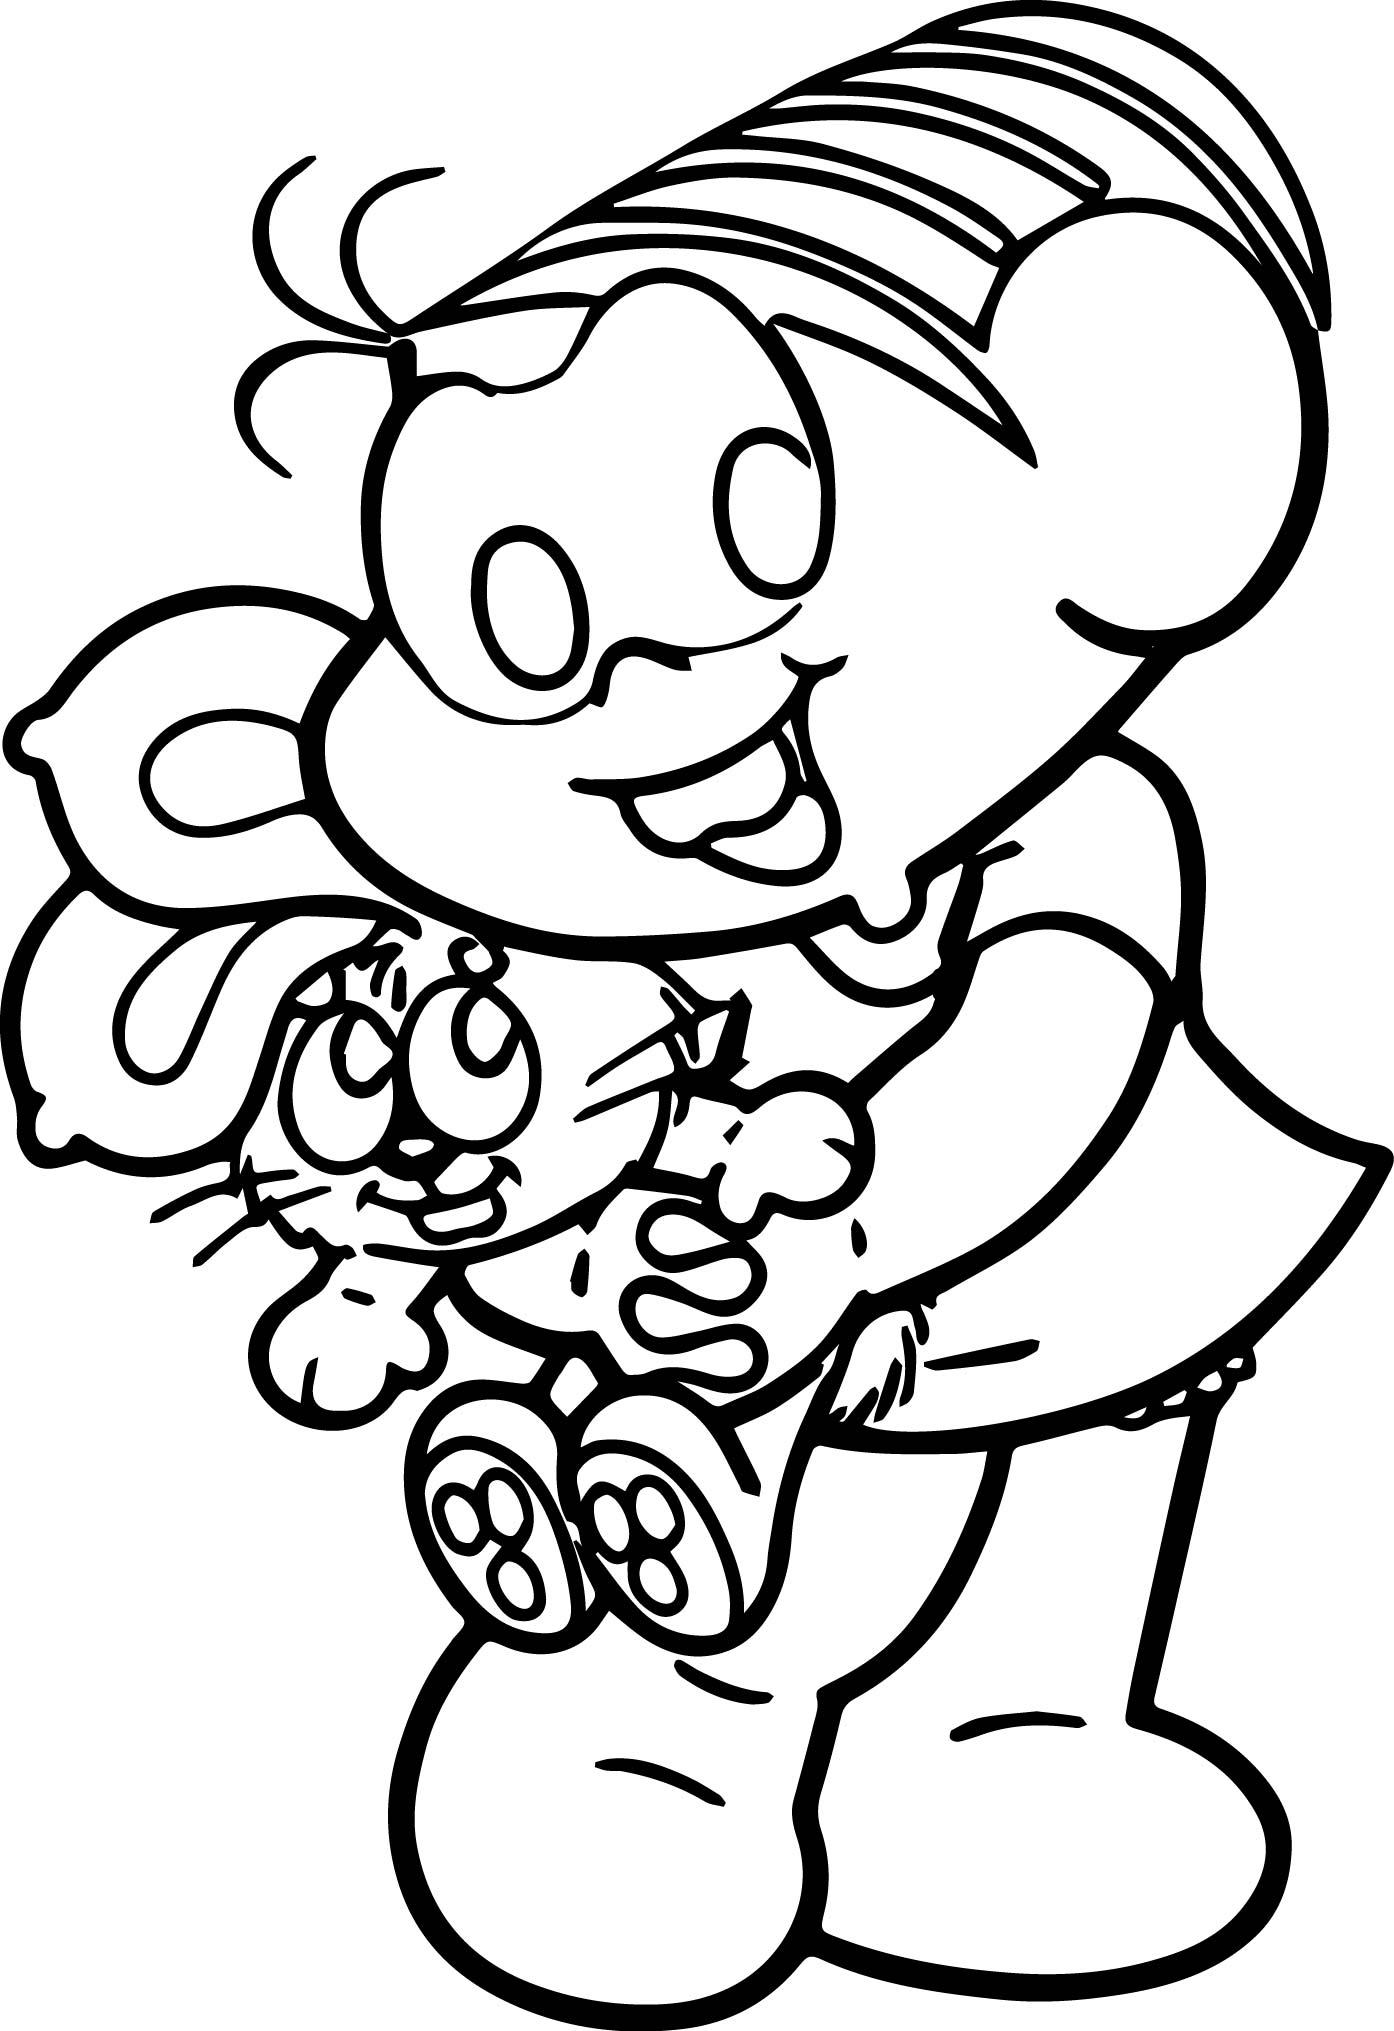 monica holding toy bunny coloring page wecoloringpage